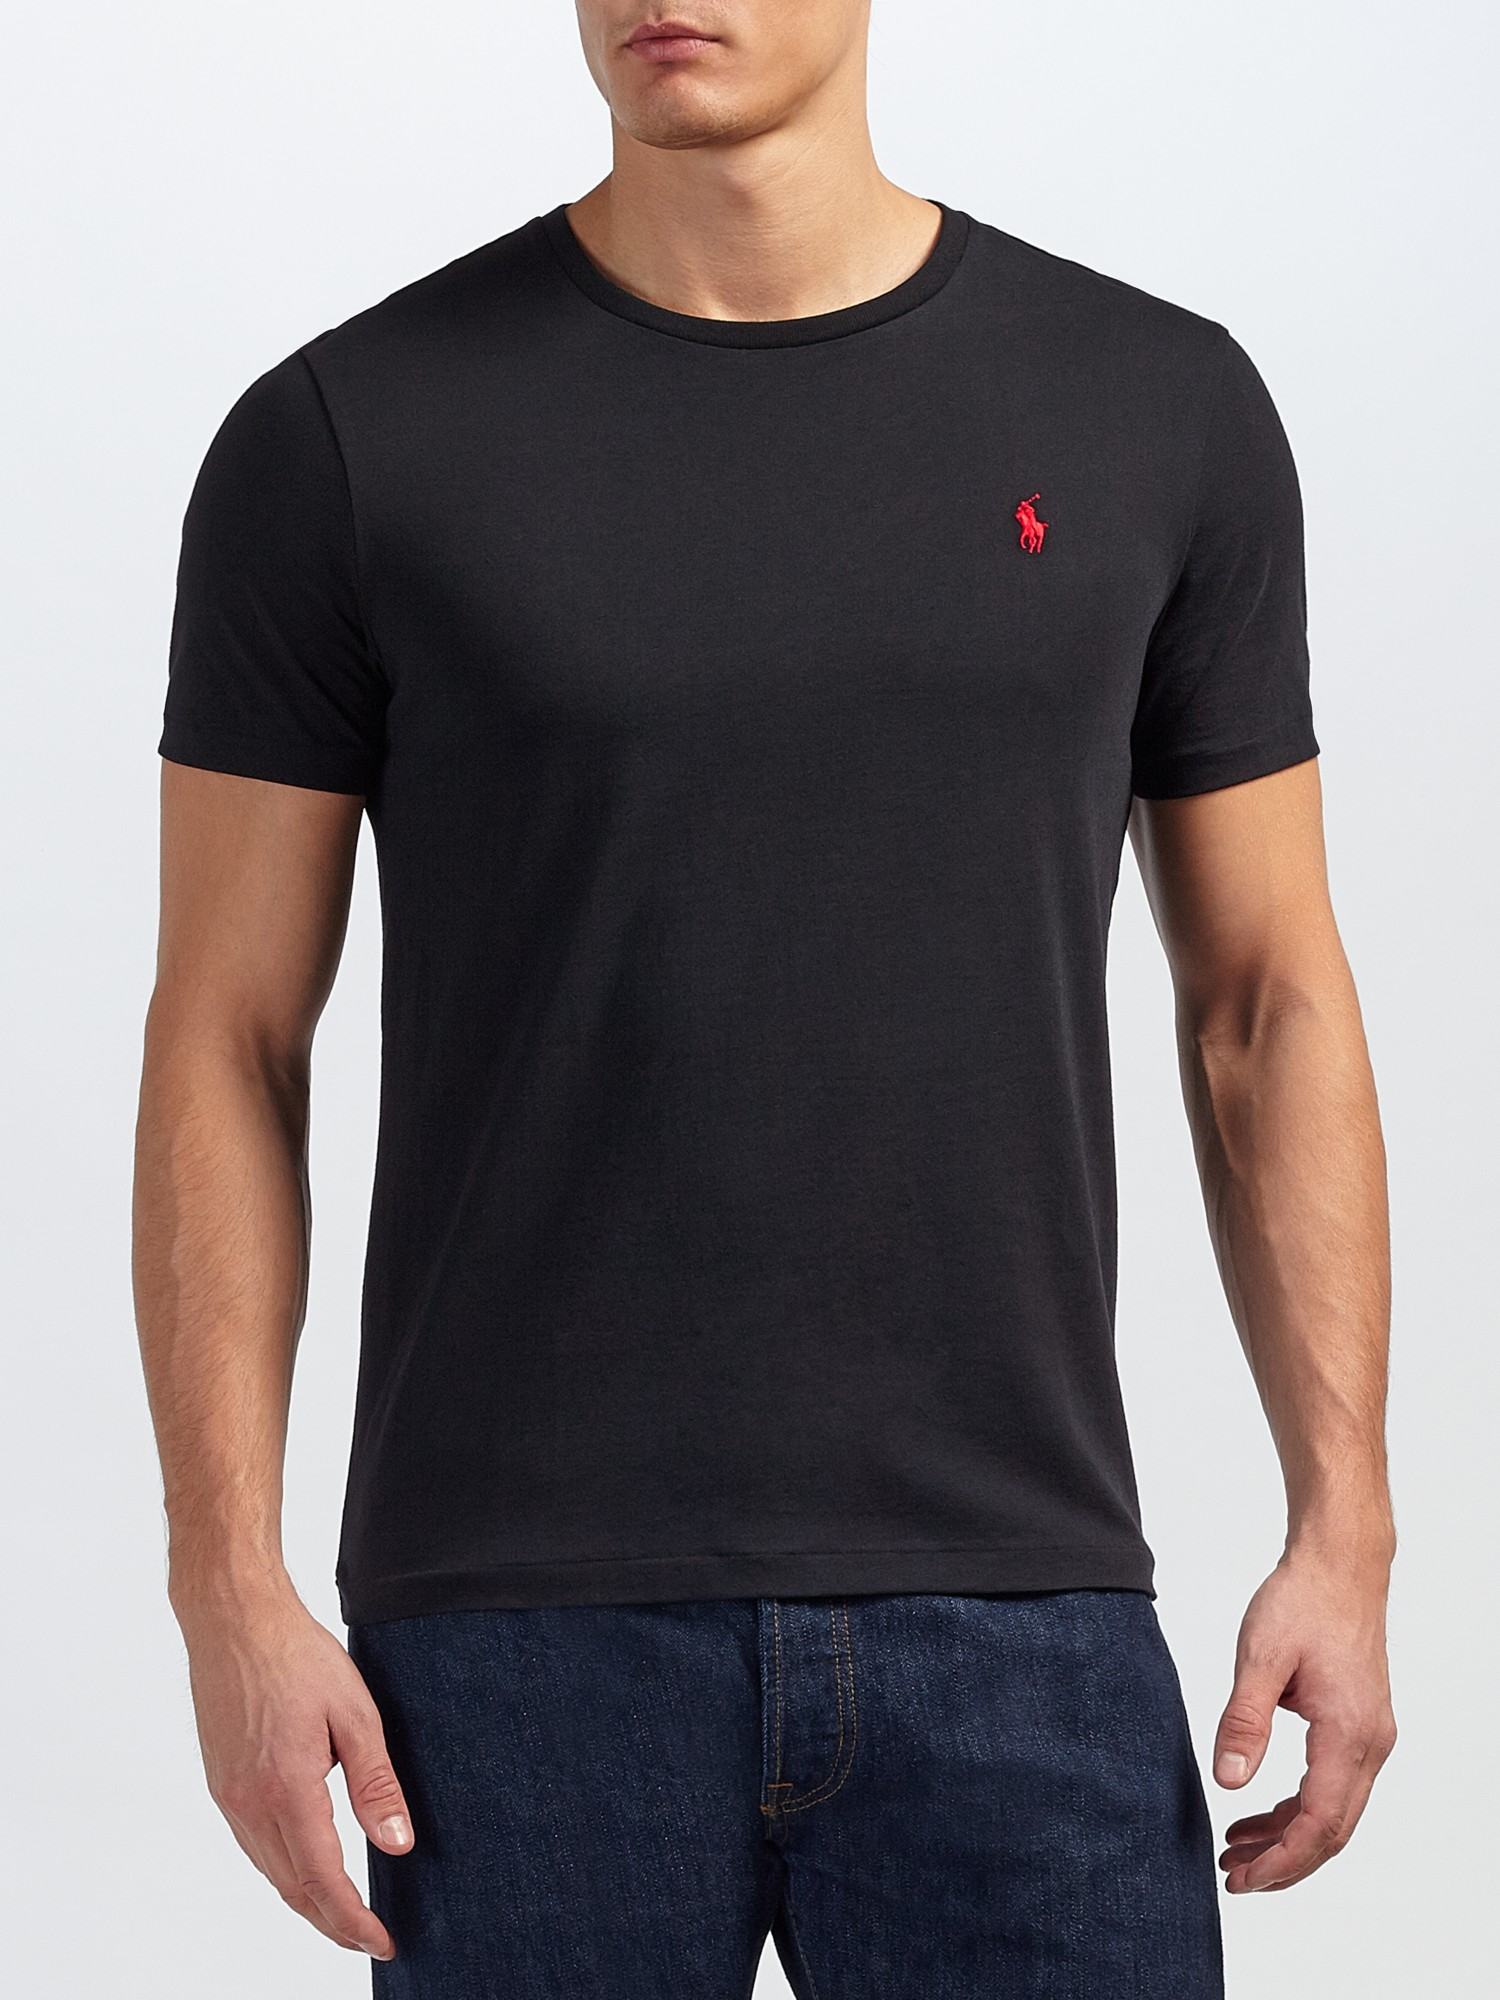 lyst polo ralph lauren basic custom fit t shirt in black